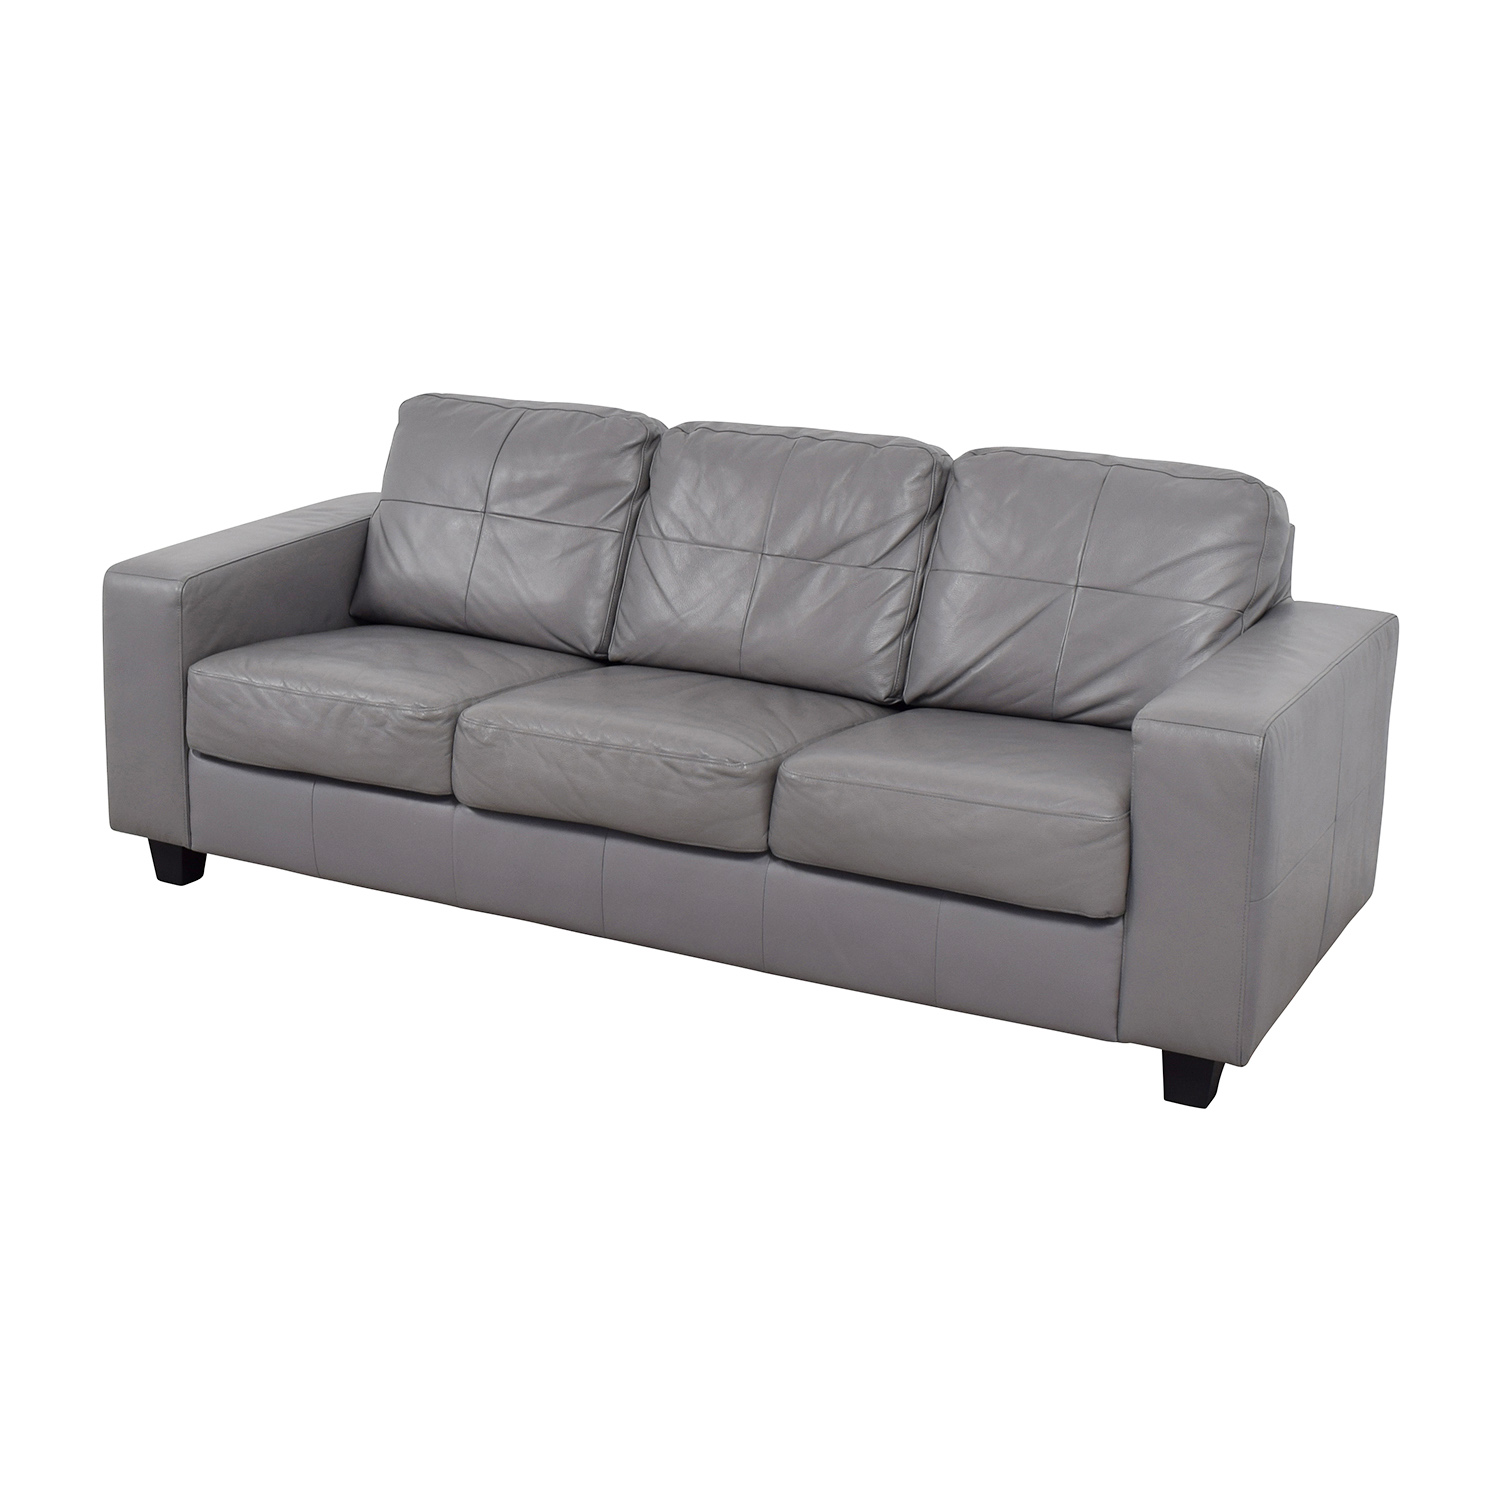 41 off ikea ikea skogaby sofa in light grey sofas. Black Bedroom Furniture Sets. Home Design Ideas